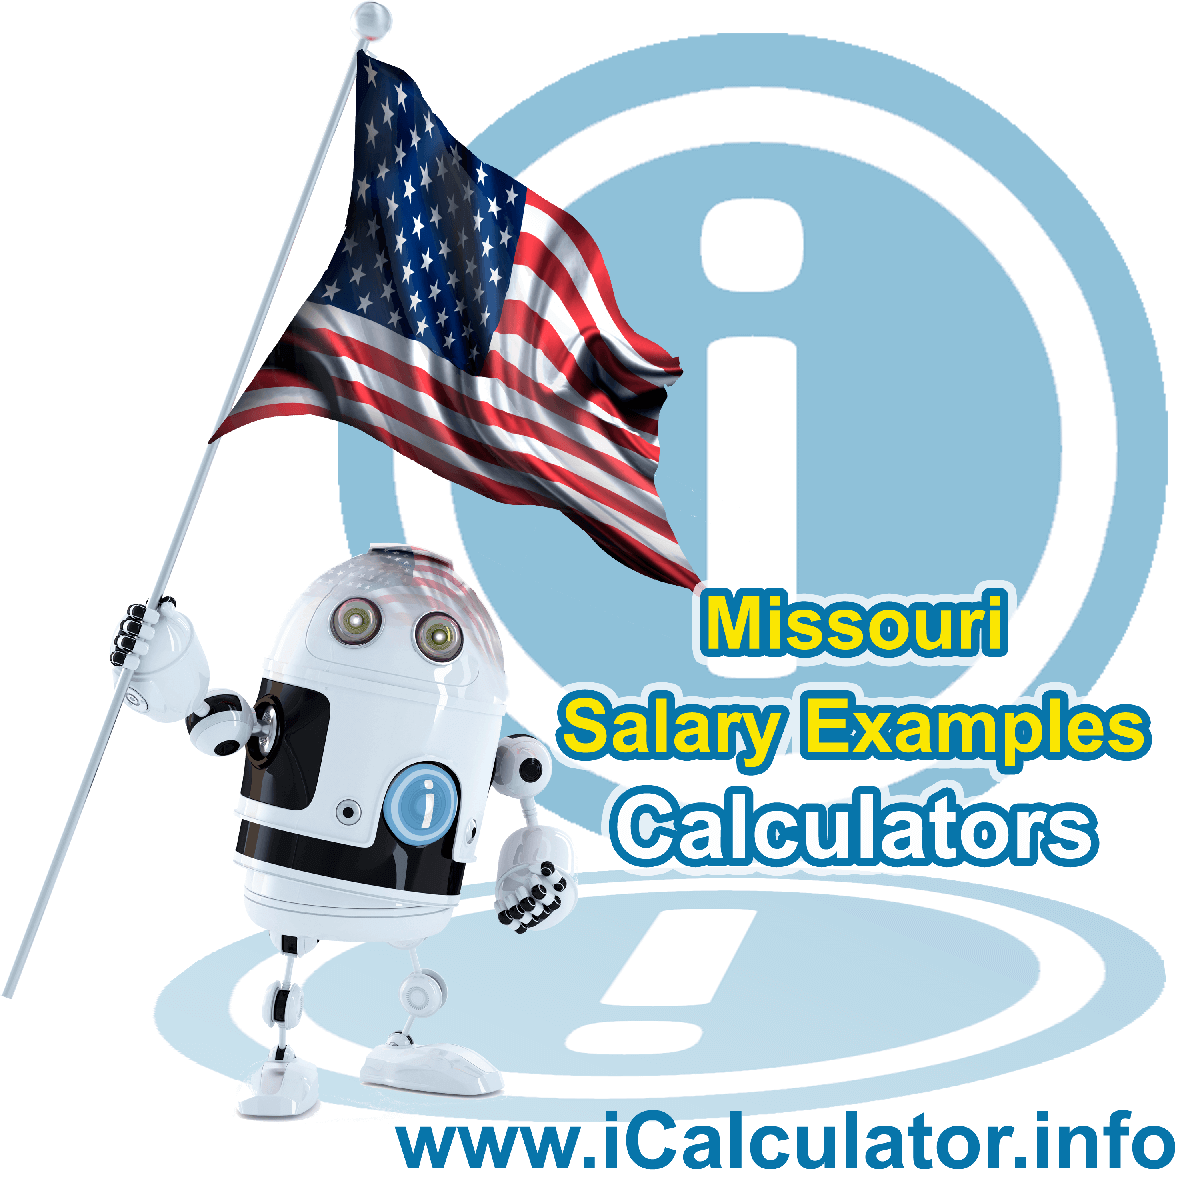 Missouri Salary Example for $40.00 in 2020 | iCalculator | $40.00 salary example for employee and employer paying Missouri State tincome taxes. Detailed salary after tax calculation including Missouri State Tax, Federal State Tax, Medicare Deductions, Social Security, Capital Gains and other income tax and salary deductions complete with supporting Missouri state tax tables